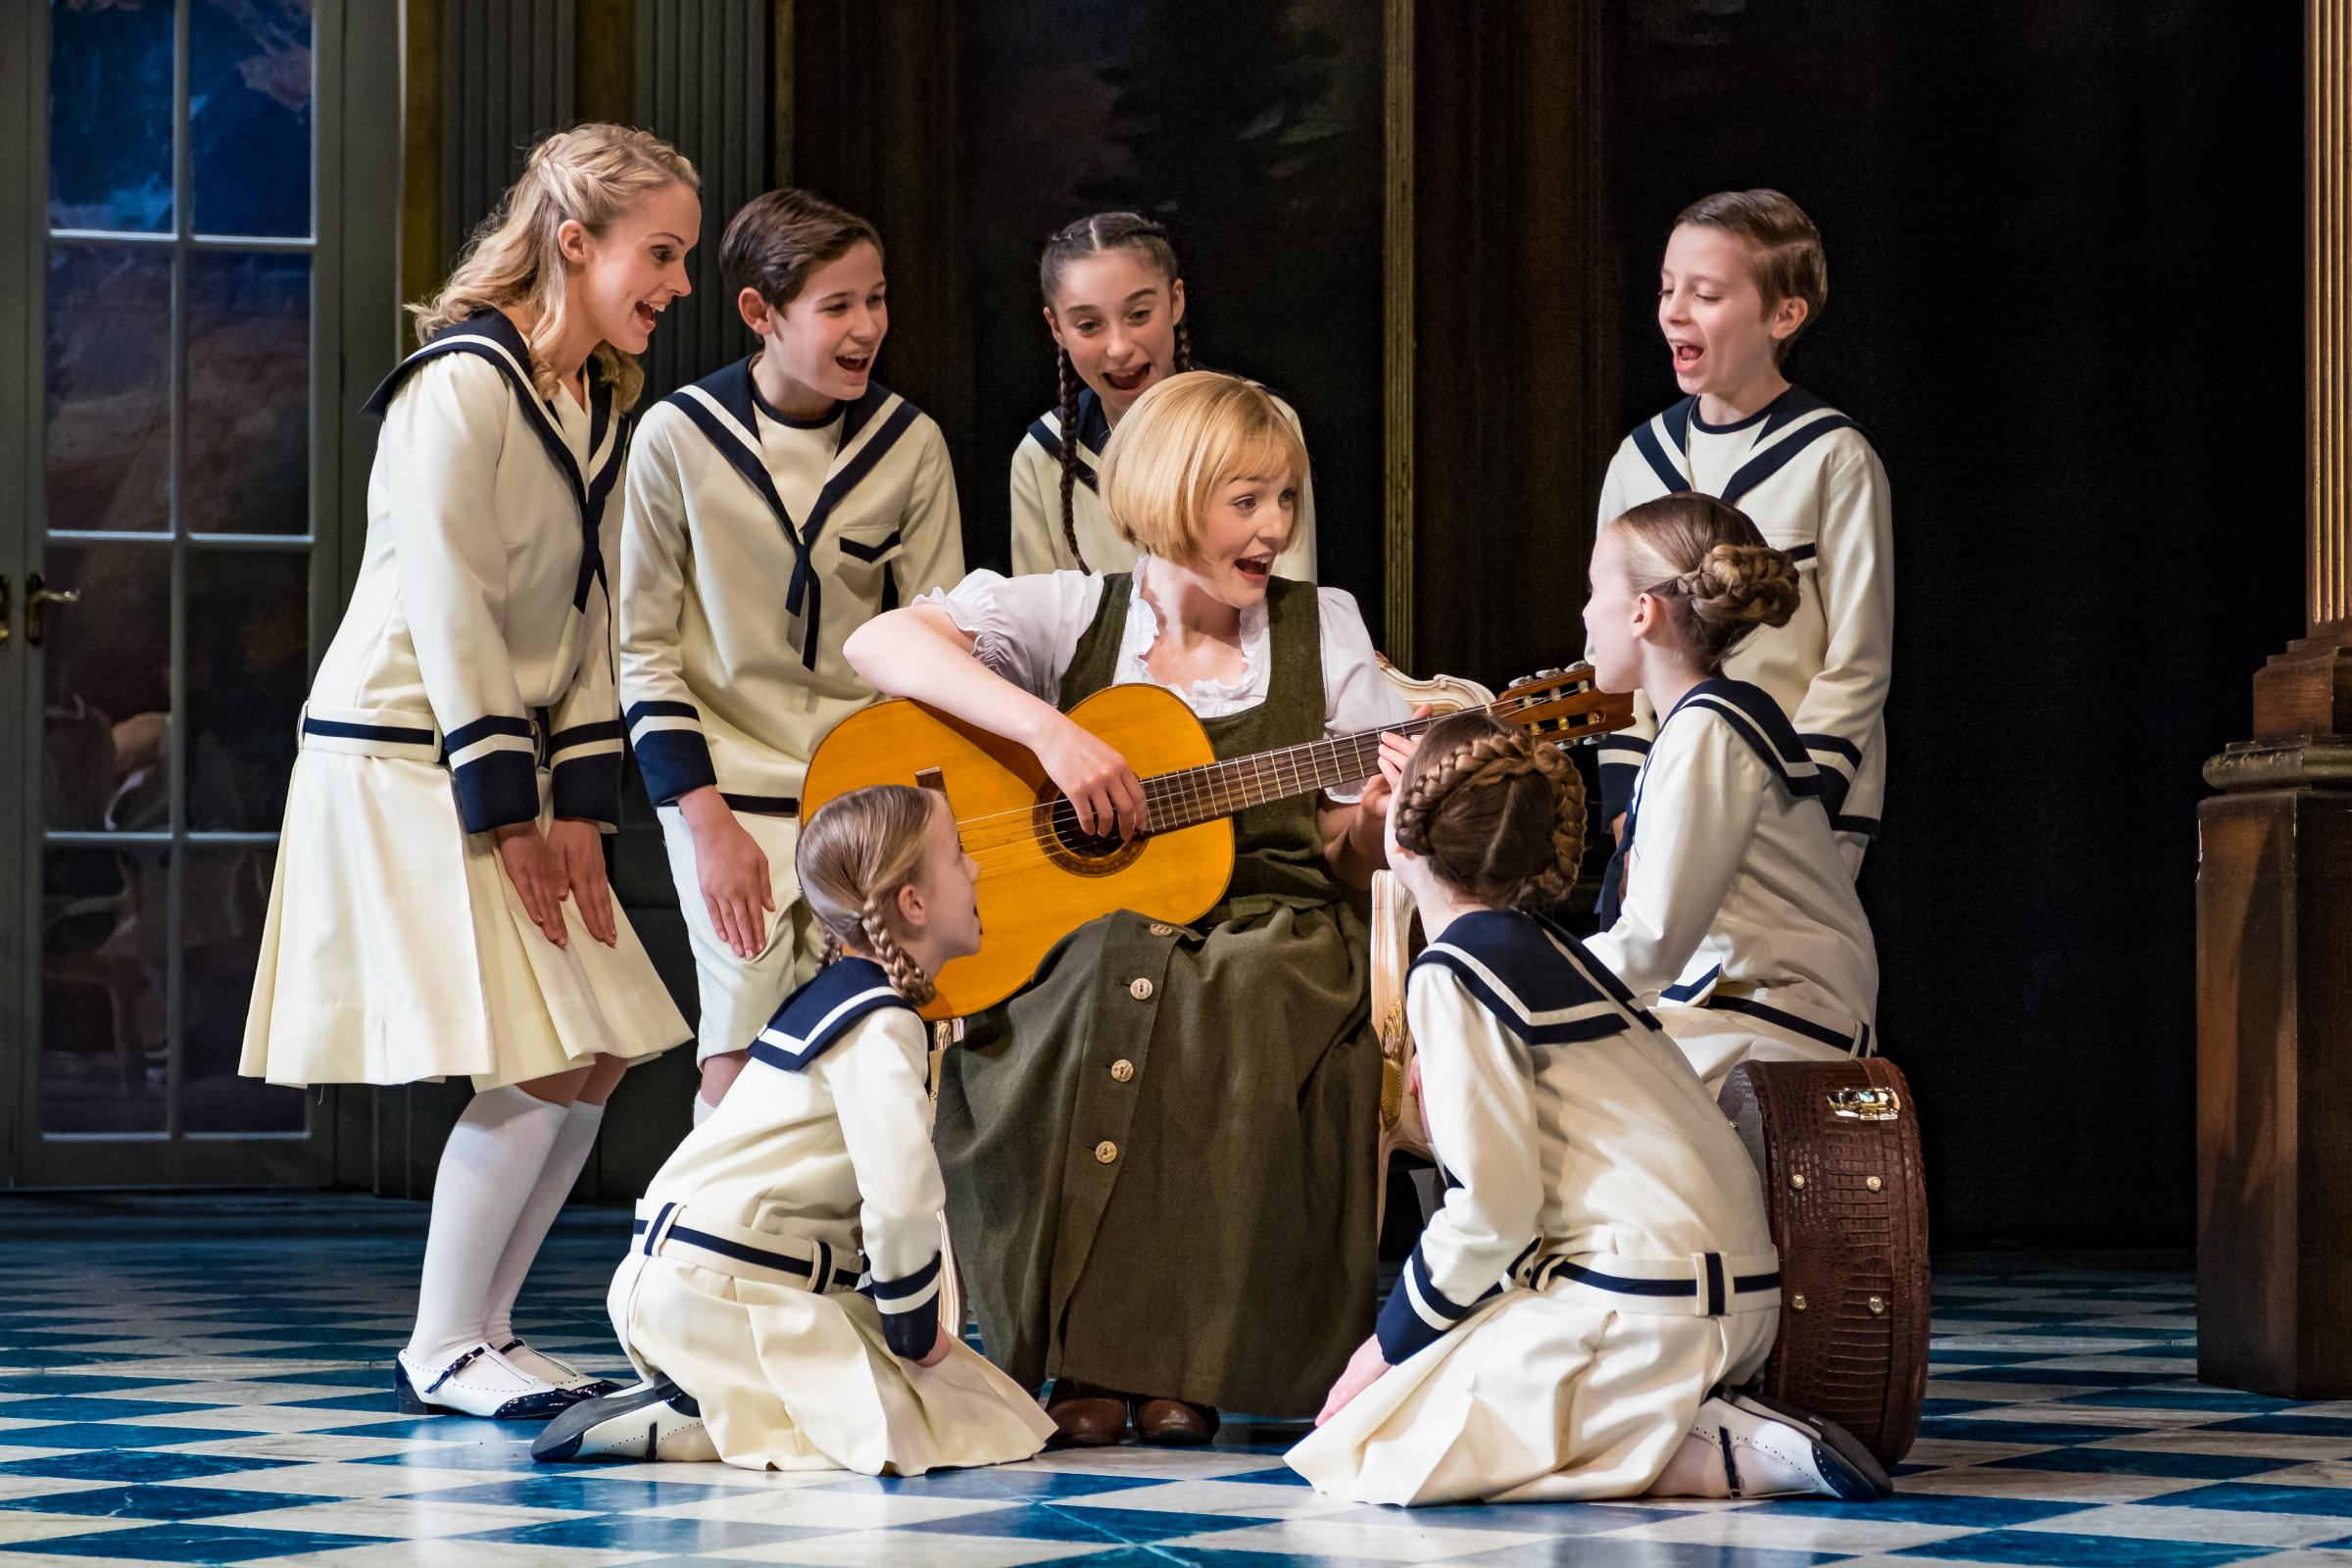 SHOW: The Sound of Music starring Lucy O'Byrne as Maria